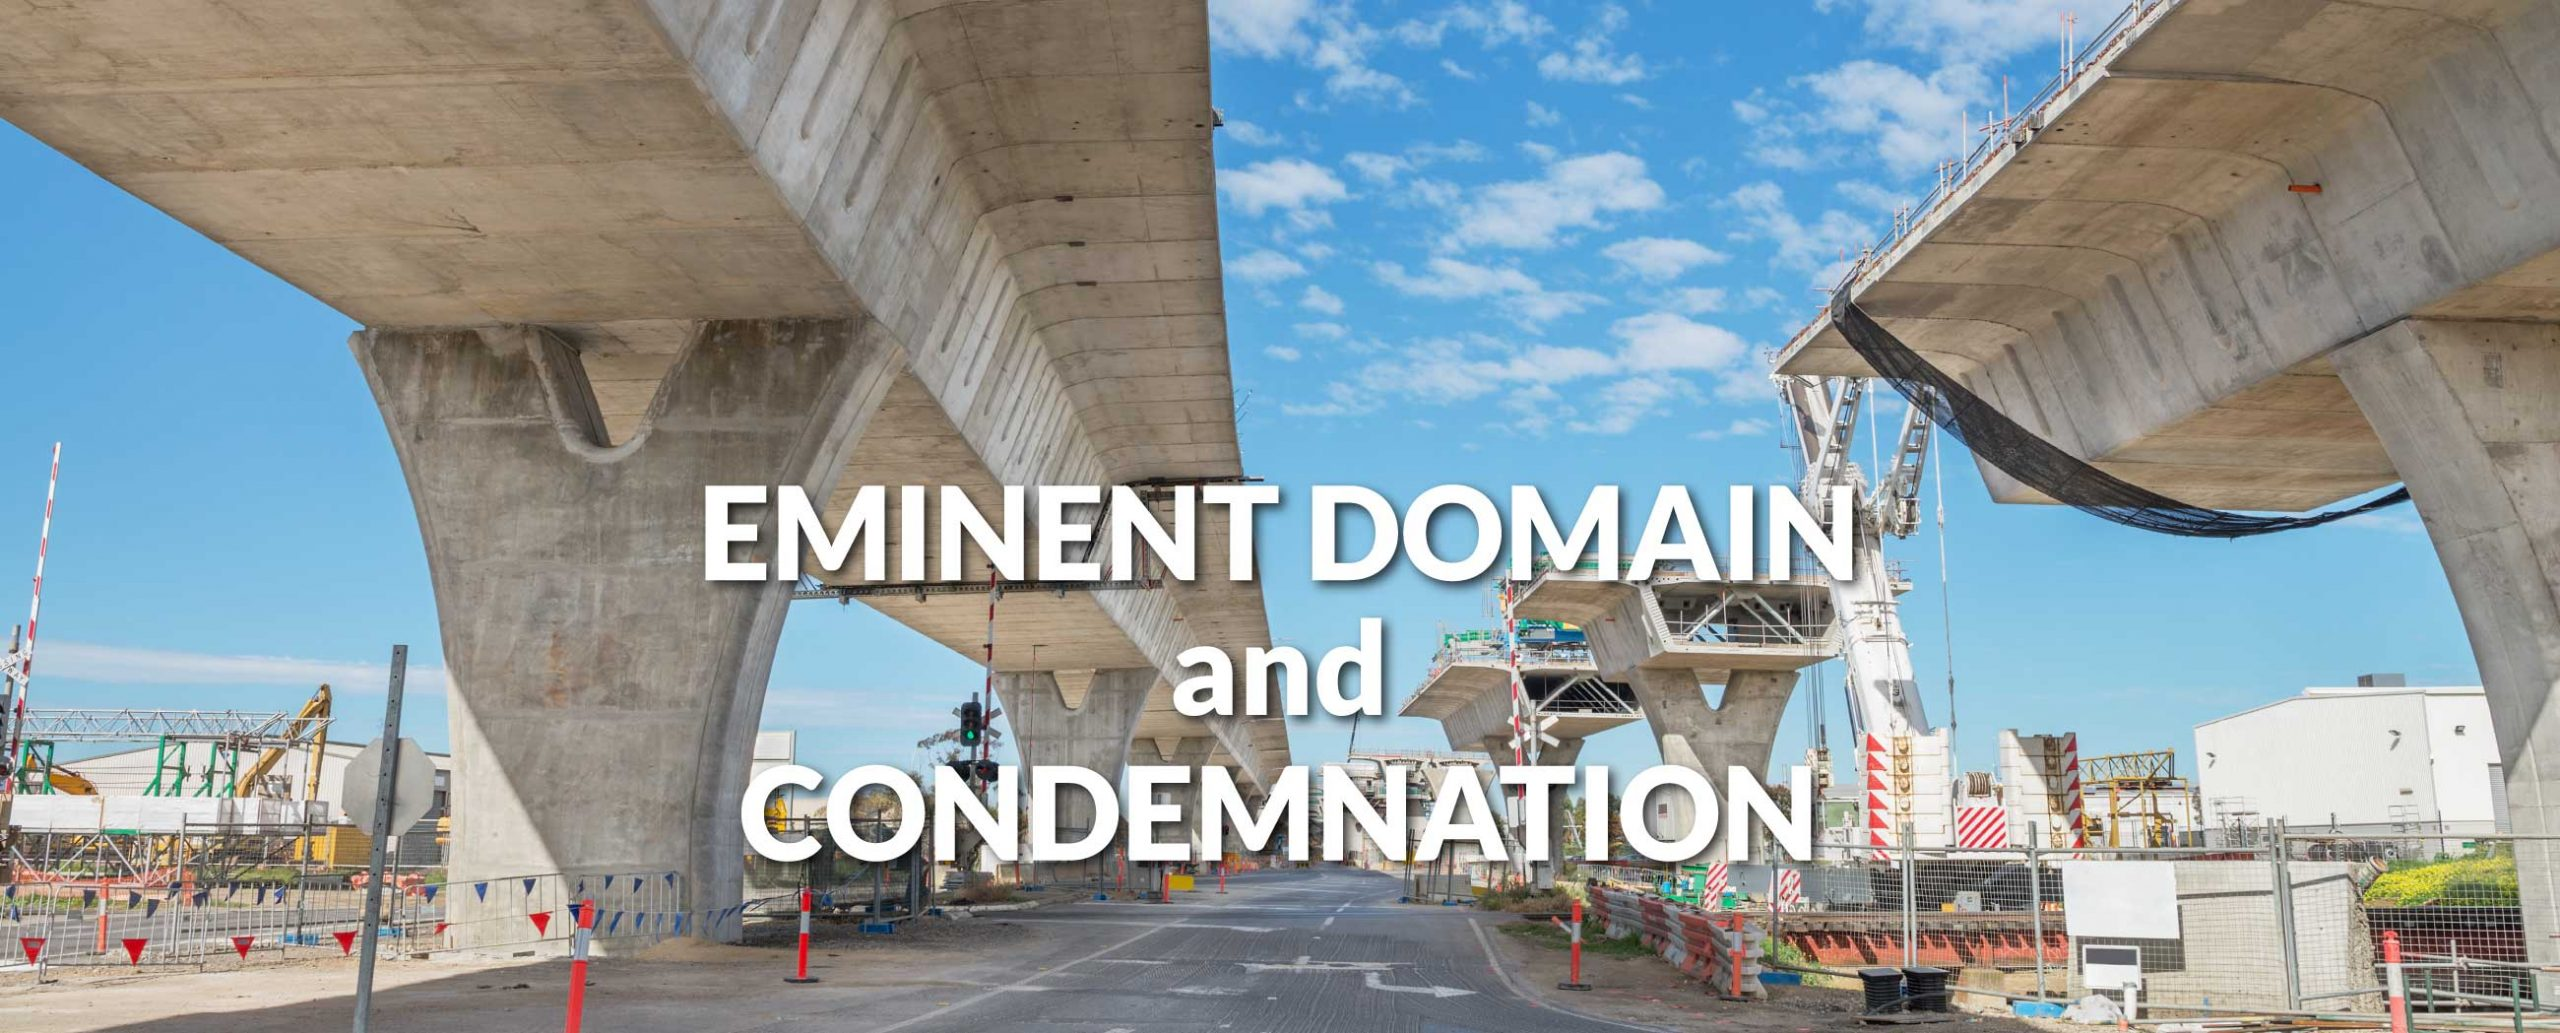 Eminent domain and condemnation